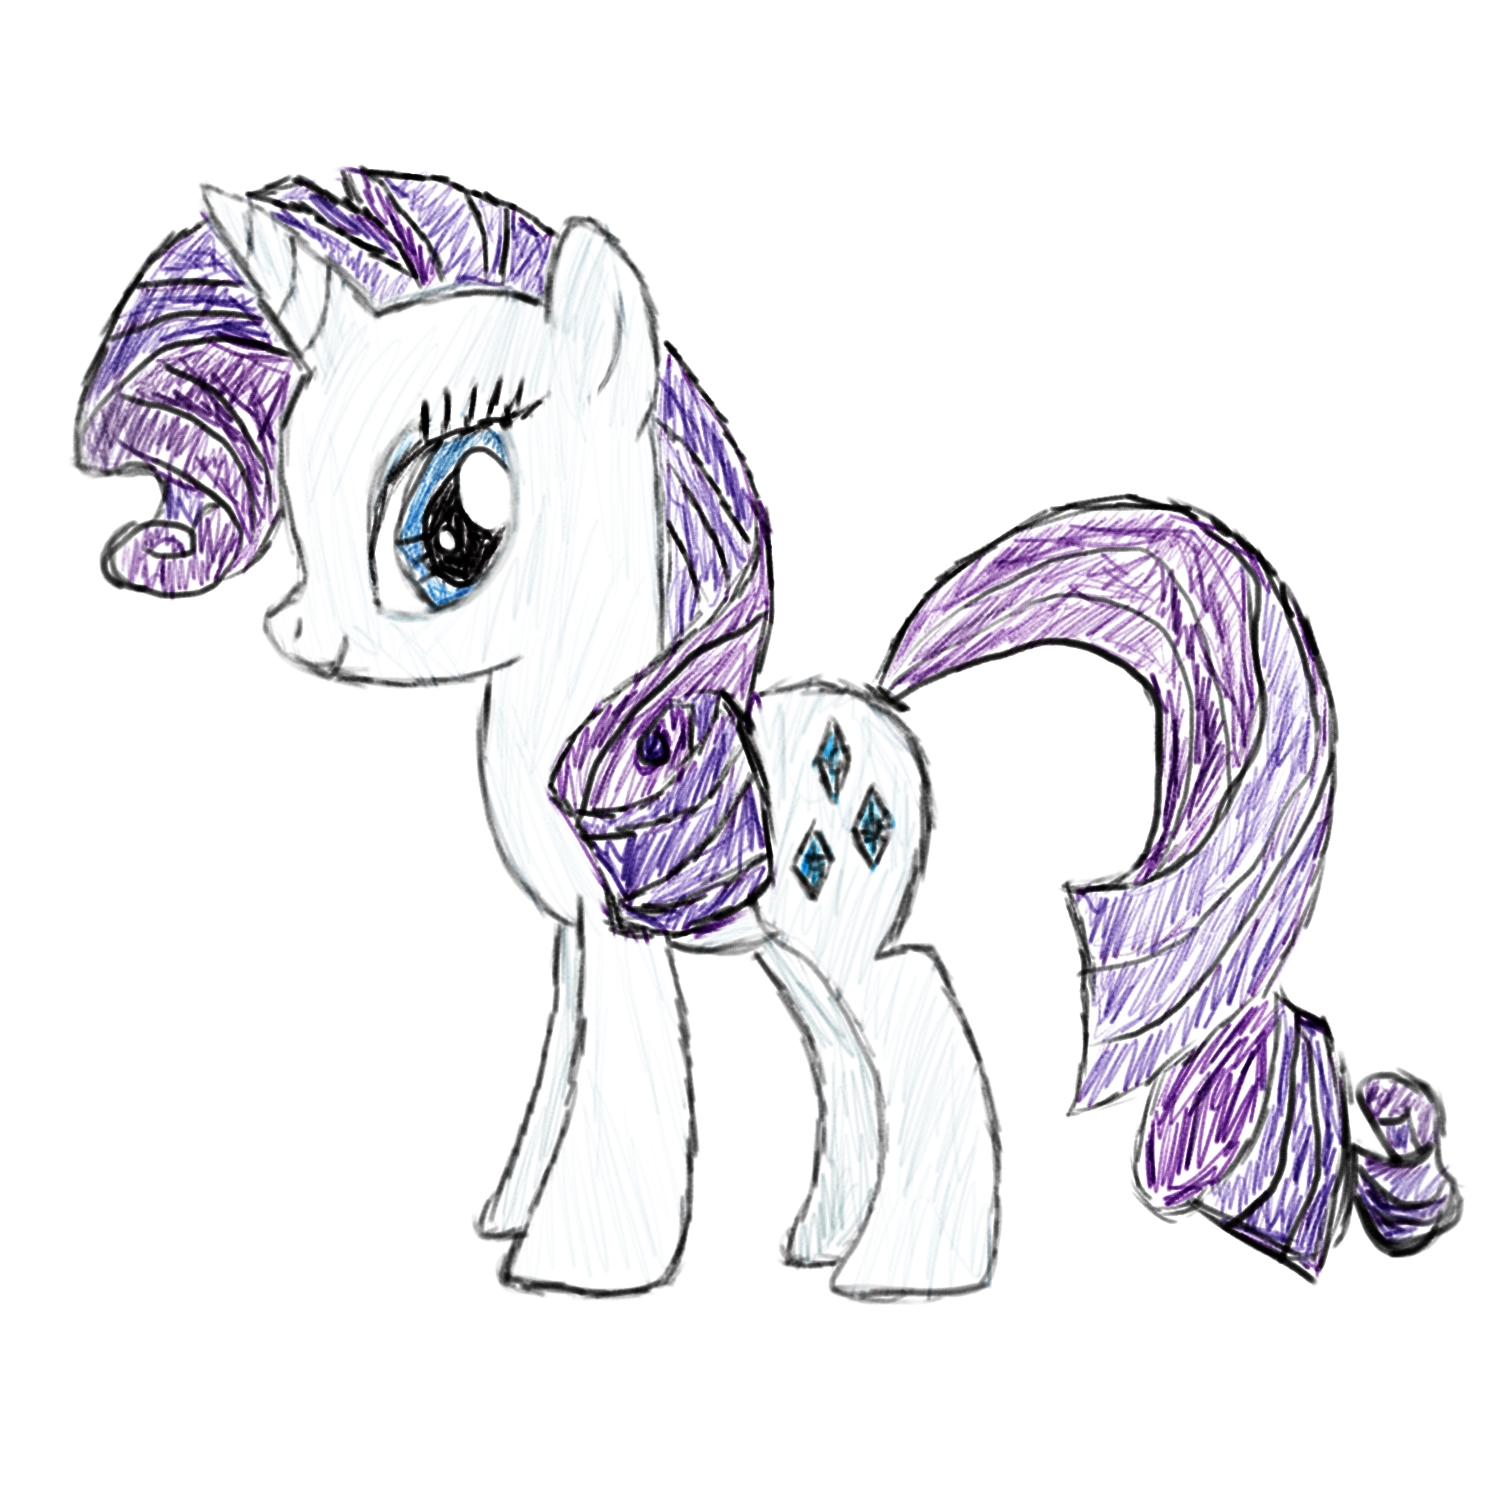 1500x1500 Rarity Drawing My Little Pony Friendship Is Magic Know Your Meme